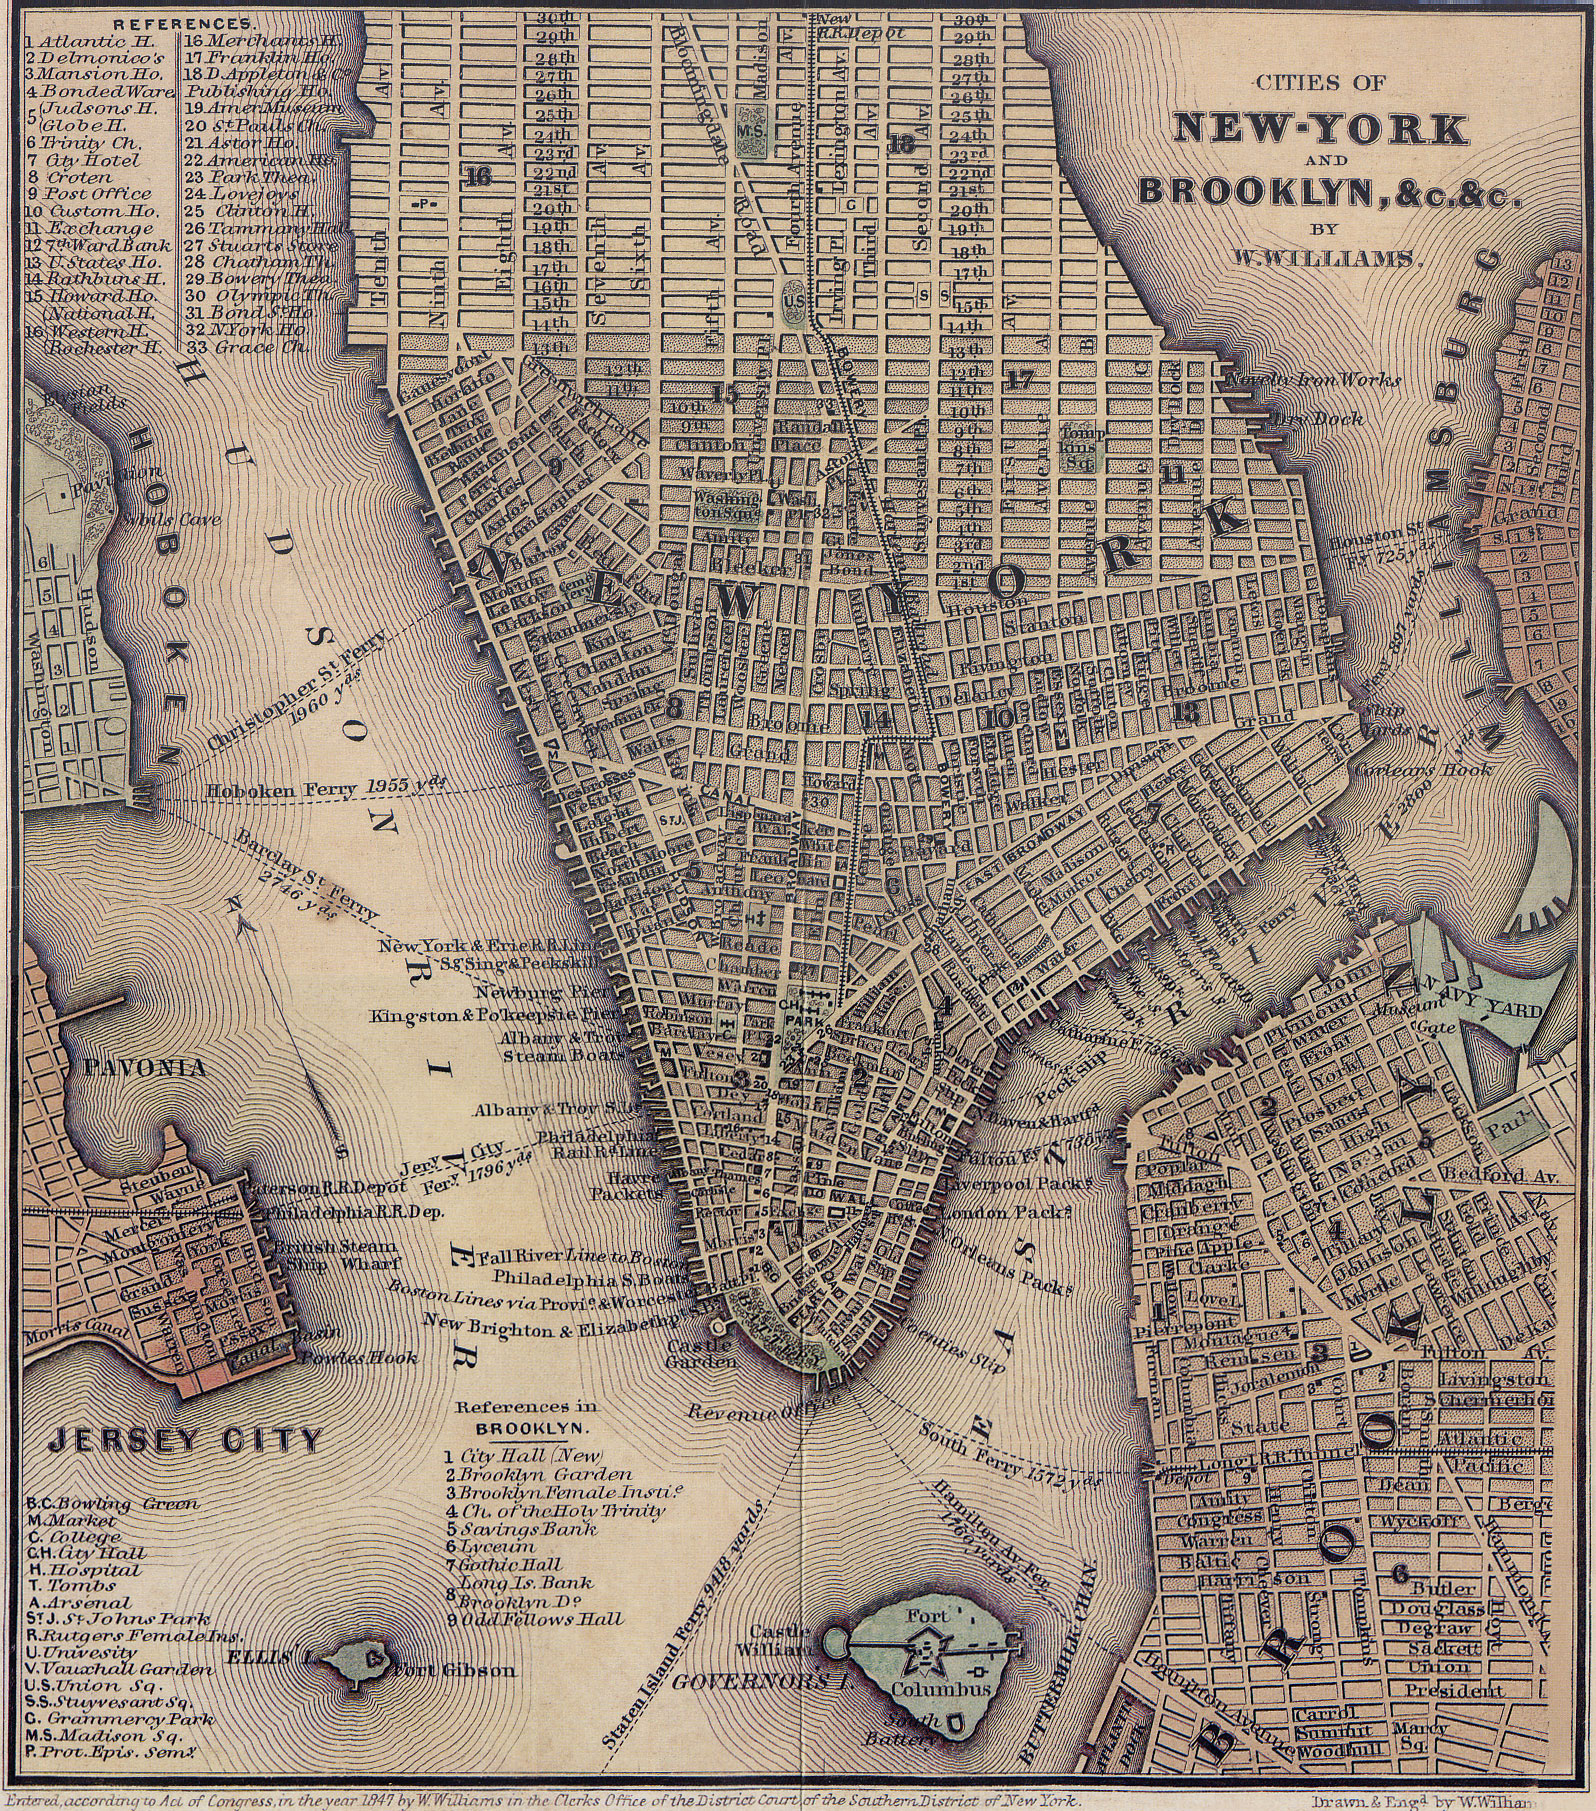 Maps Architectural Technology Subject Guides at New York City